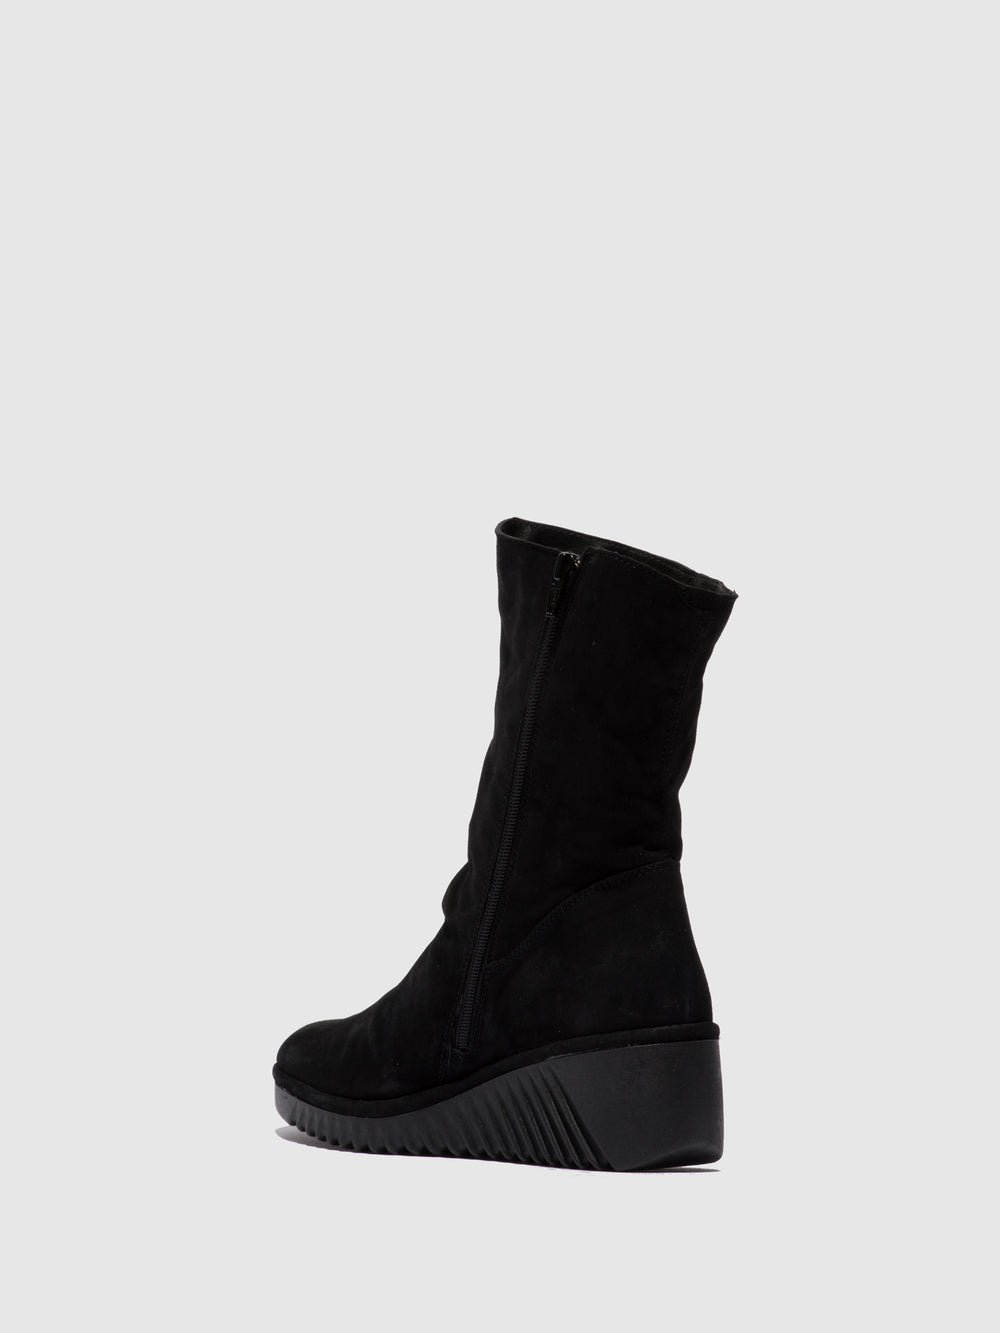 Zip Up Ankle Boots LEDE228FLY SILKY BLACK